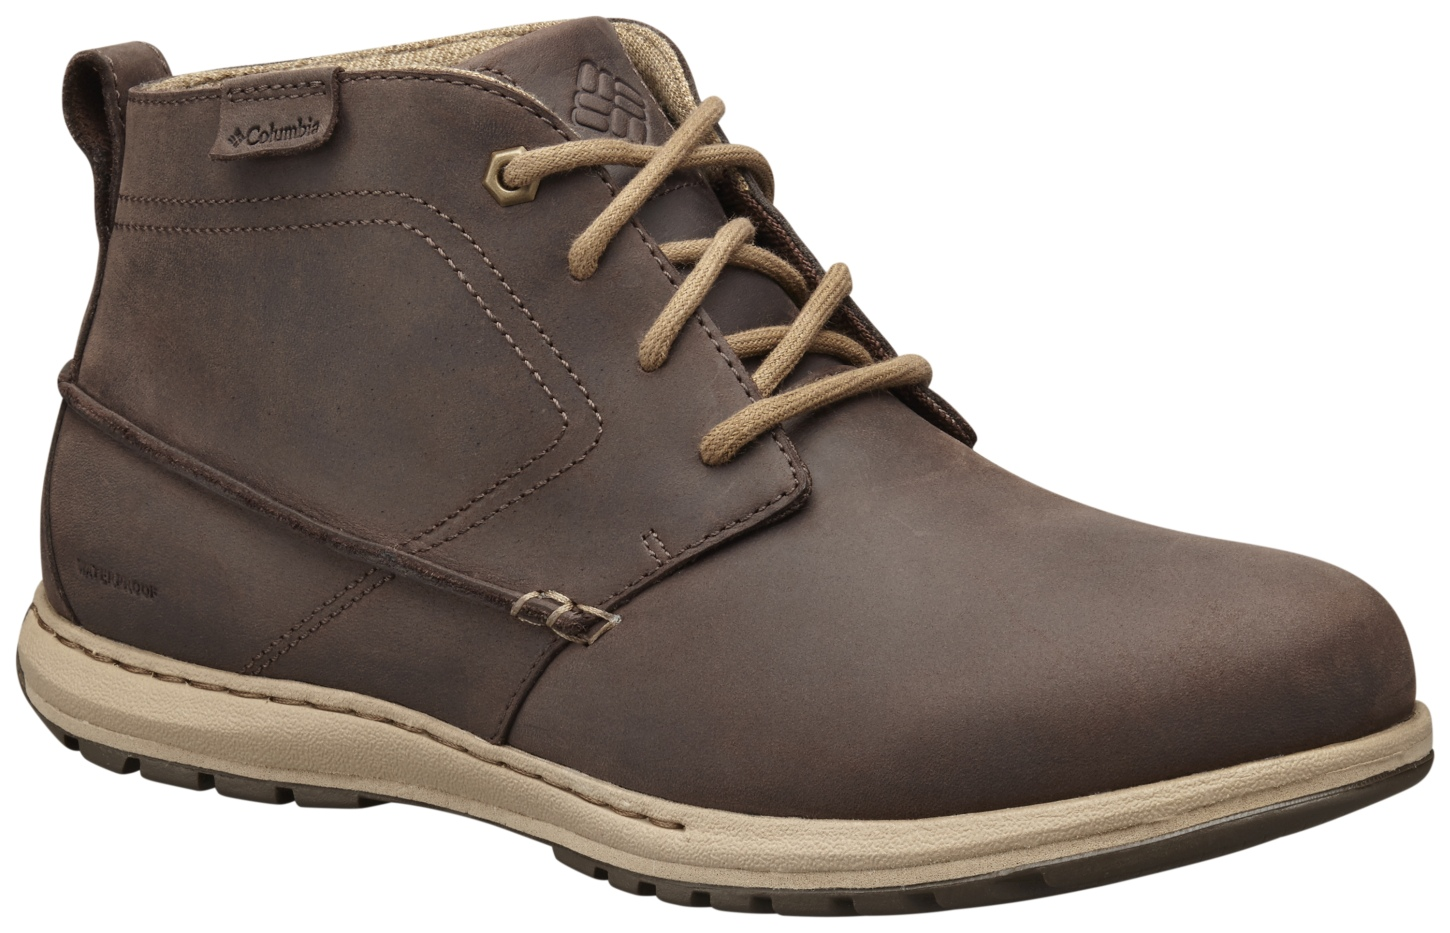 Columbia Men's Davenport Chukka Waterproof Leather Boots Cordovan, Prairie Sand-30